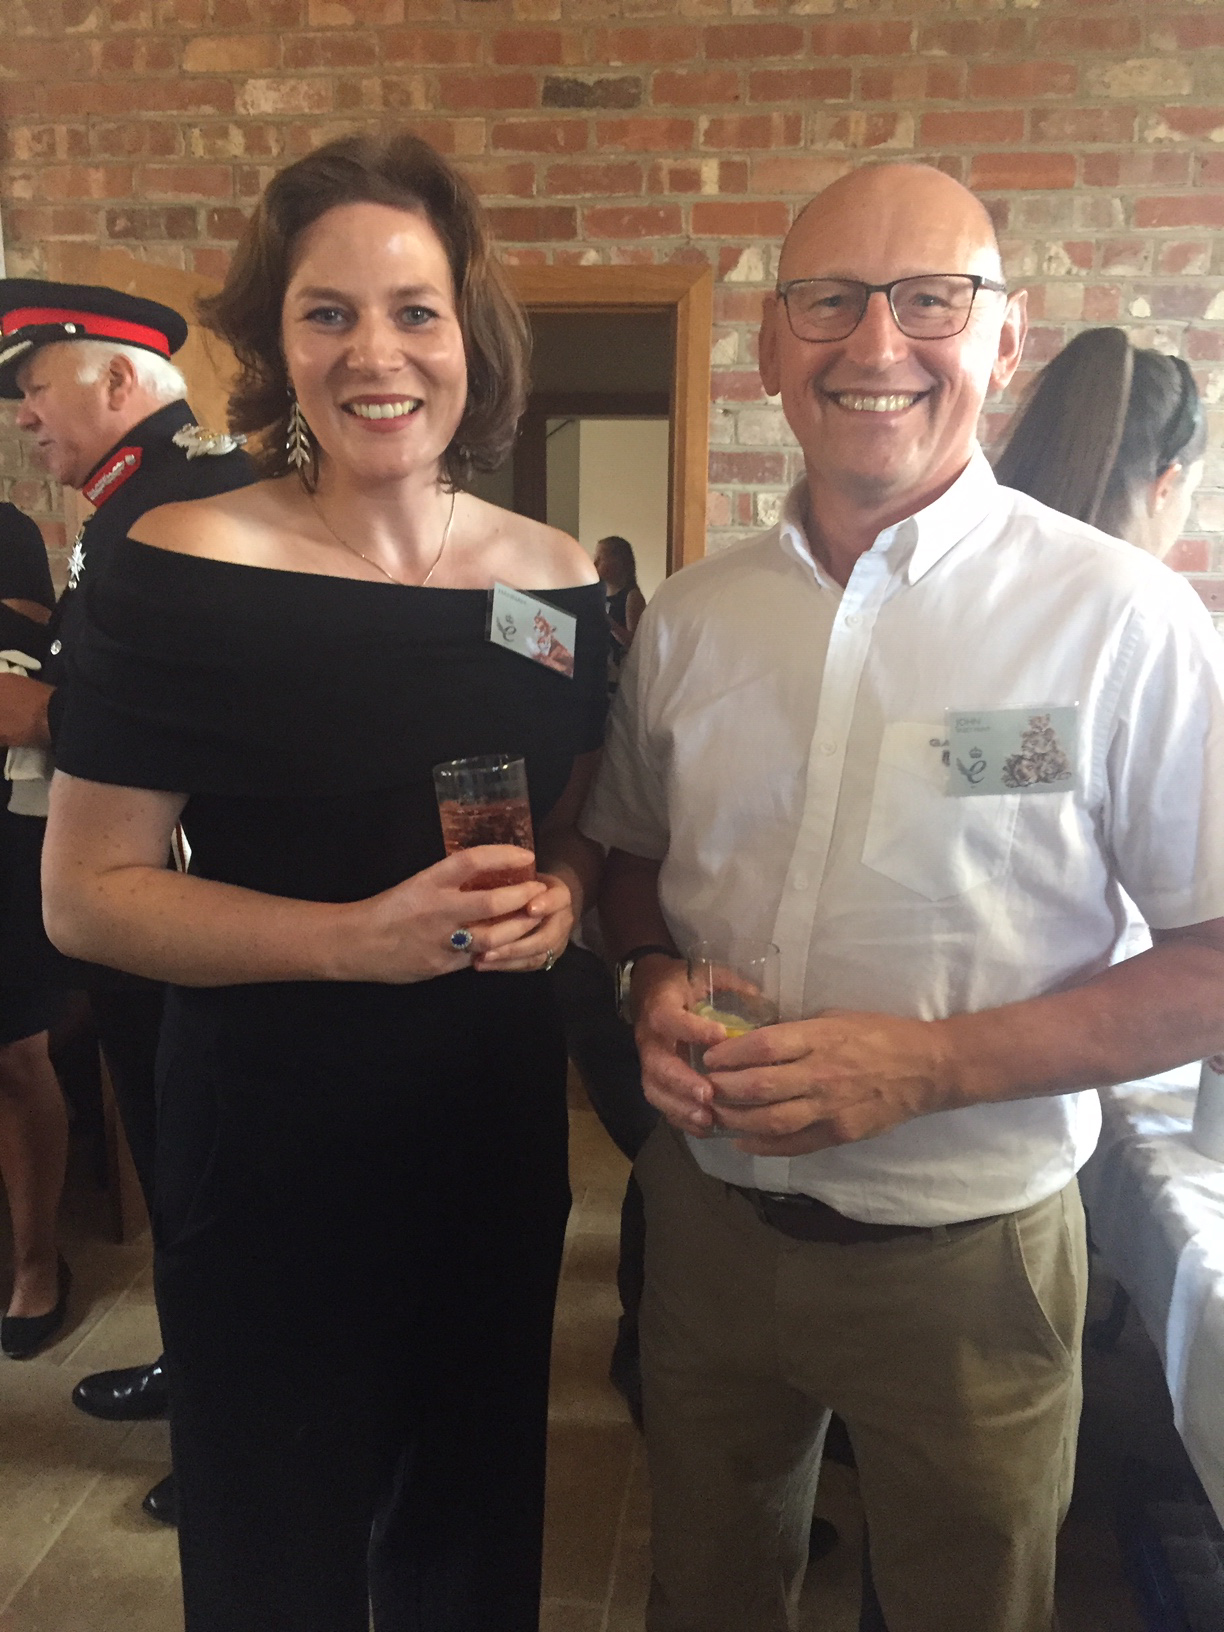 Above: John Skeet of Skeet Print, who gave a lovely speech at the event, with Hannah Dale.